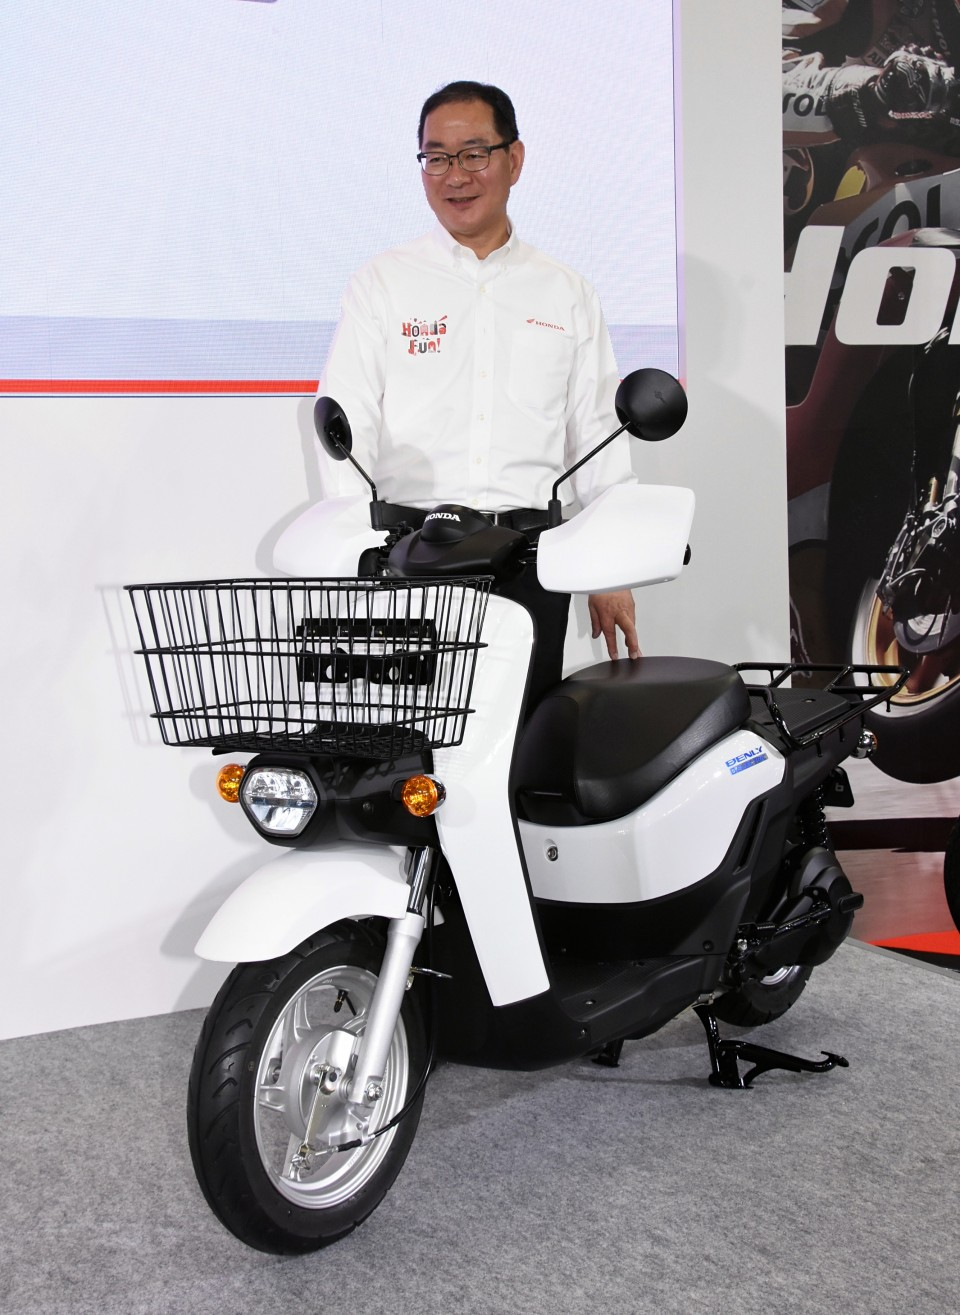 Manufacturers Target New Riders New Challenges At Tokyo Motorcycle Show